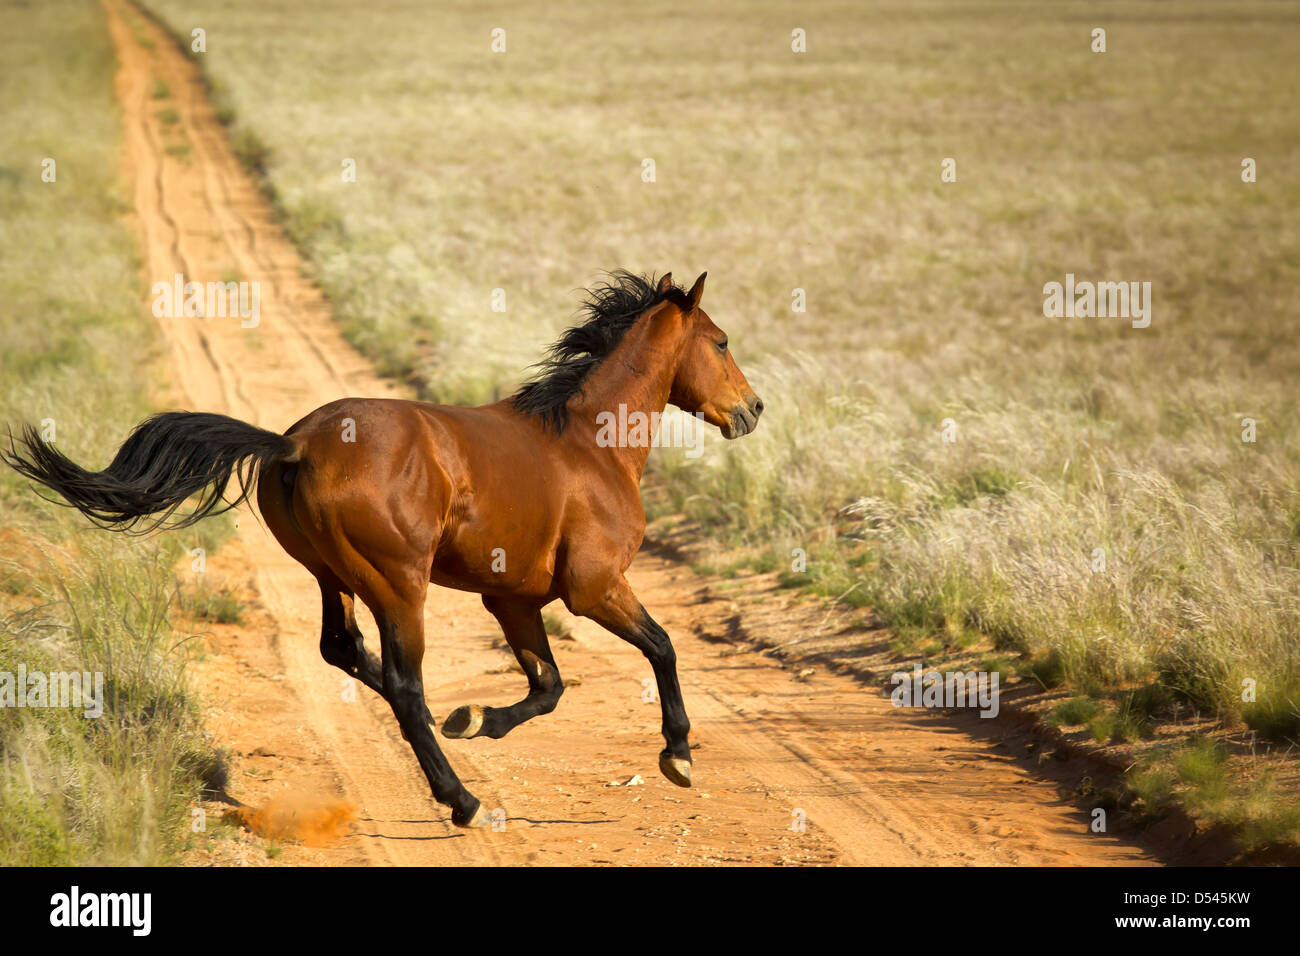 Namibian feral horse crossing local road at high speed near Aus. - Stock Image